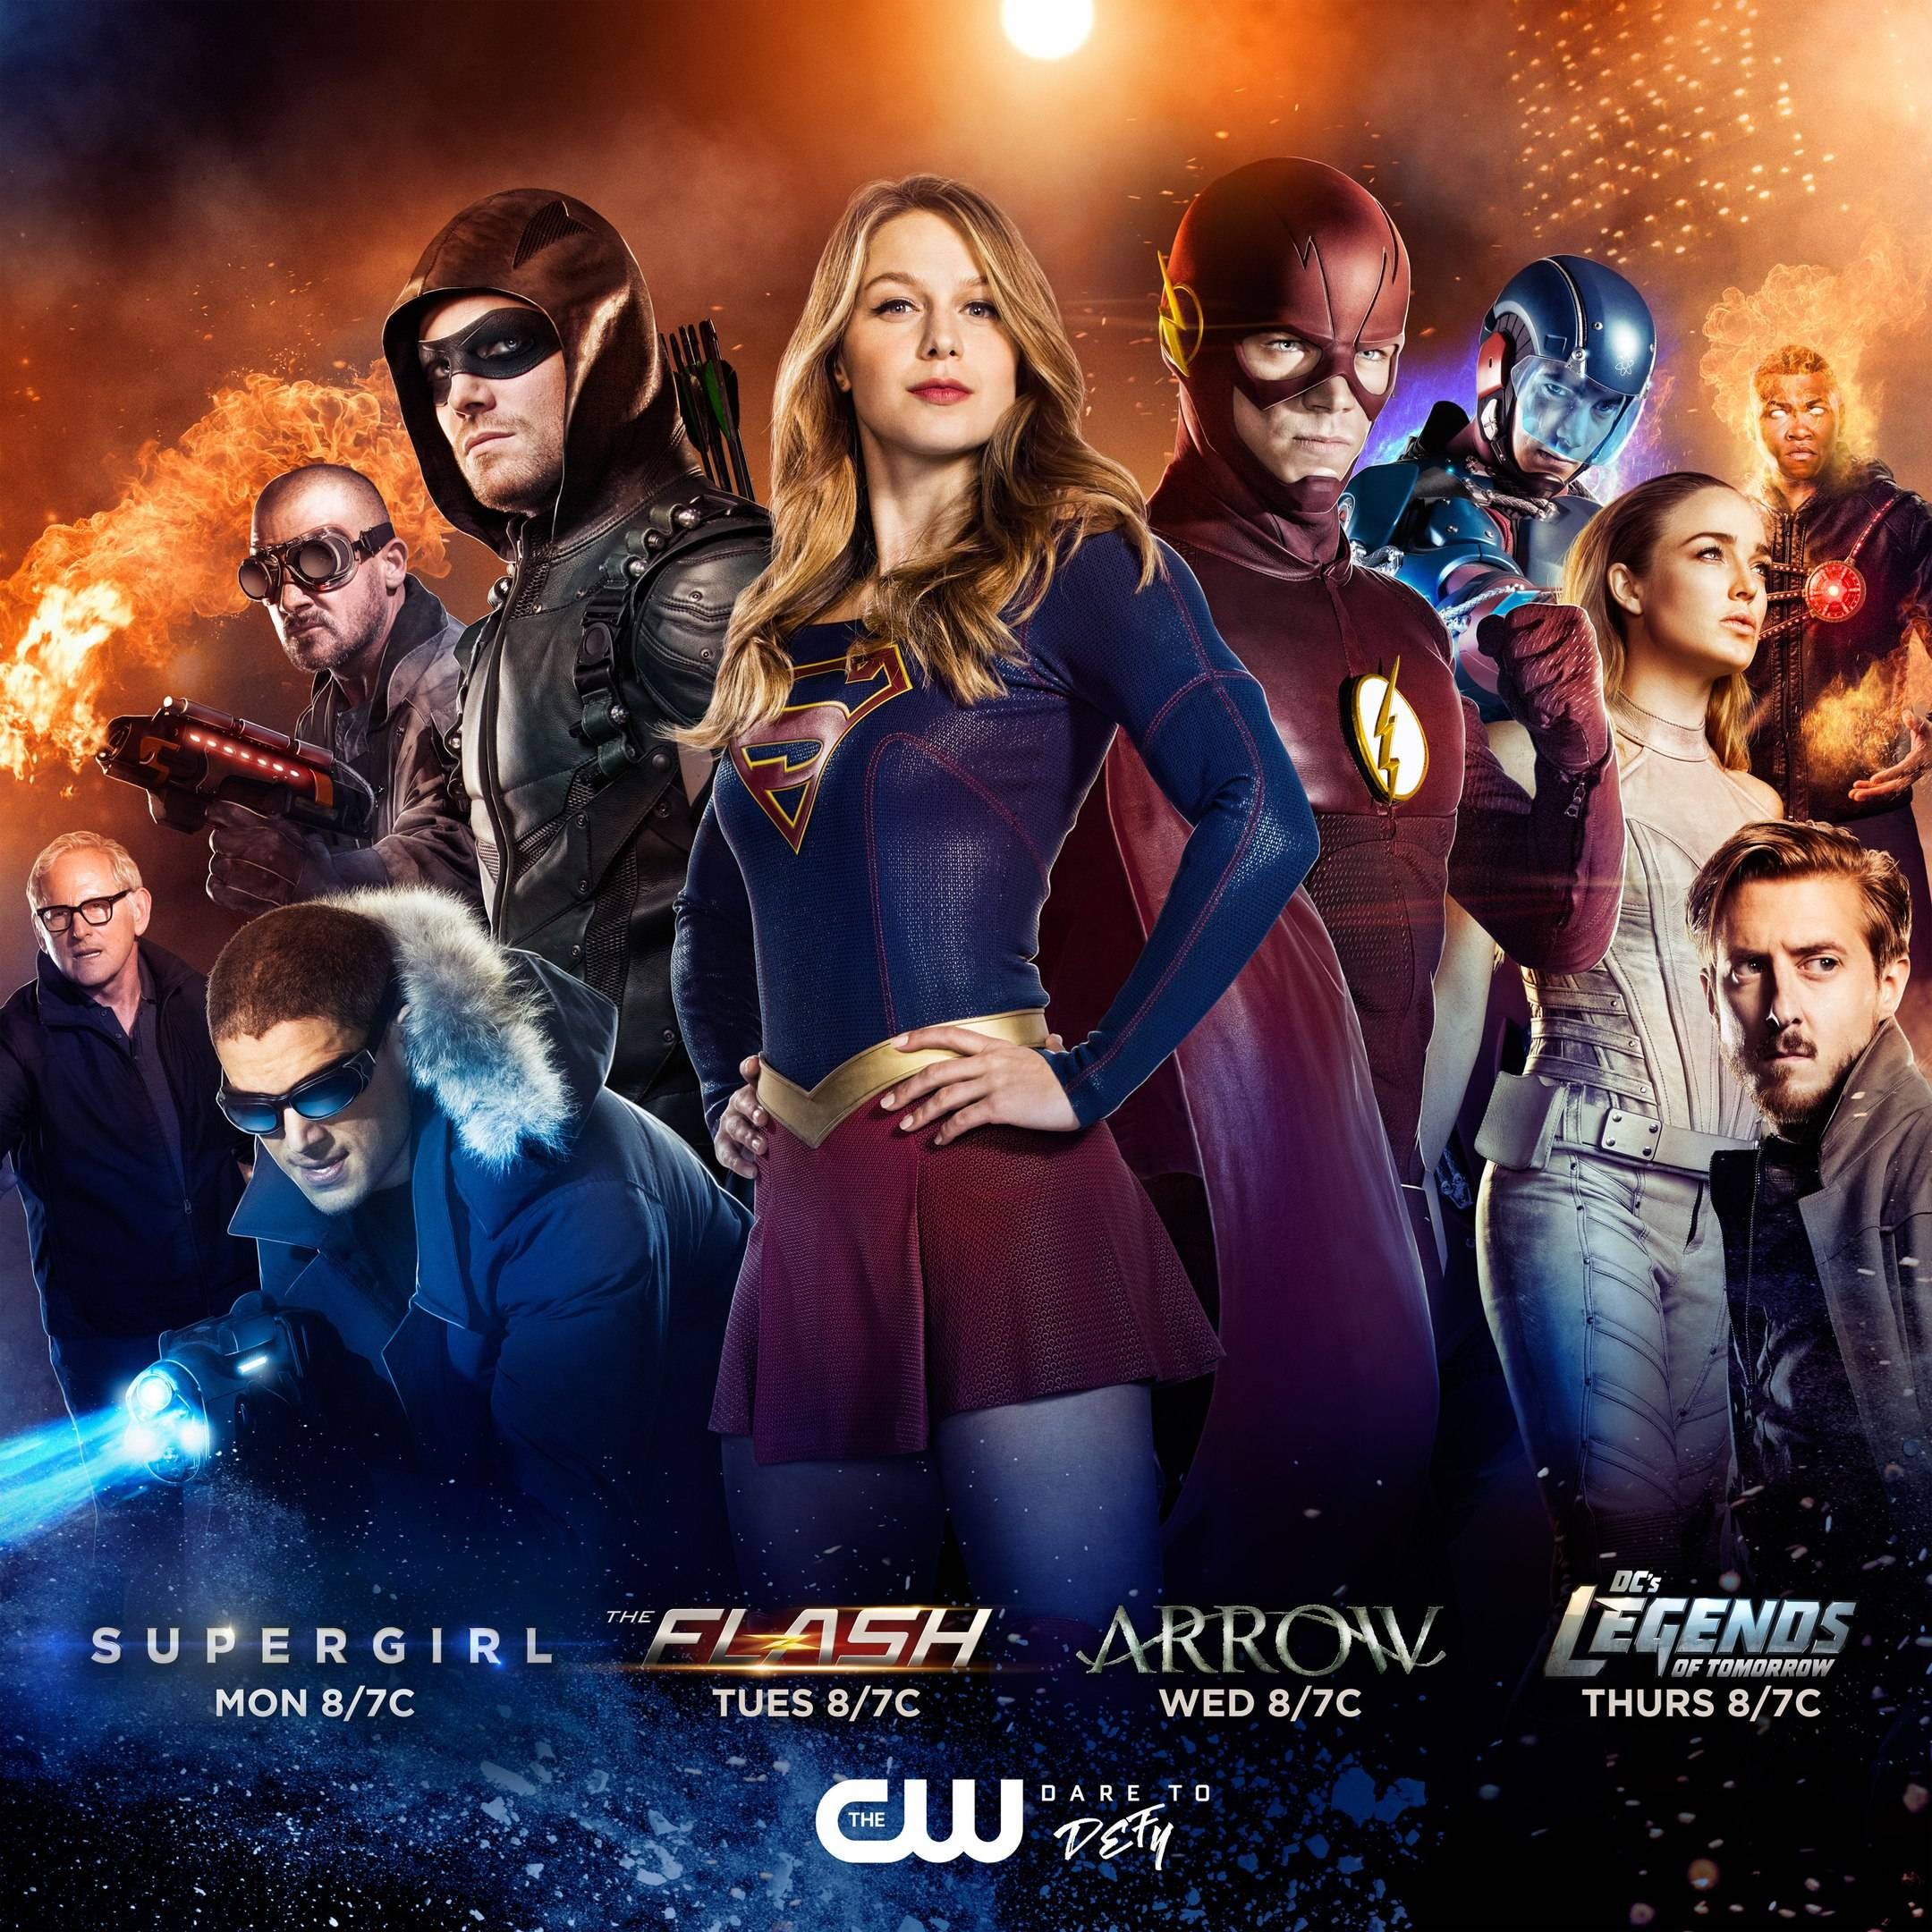 poster-crossover-arrow-the-flash-supergirl-dc-legends-of-tomorrow-the-cw